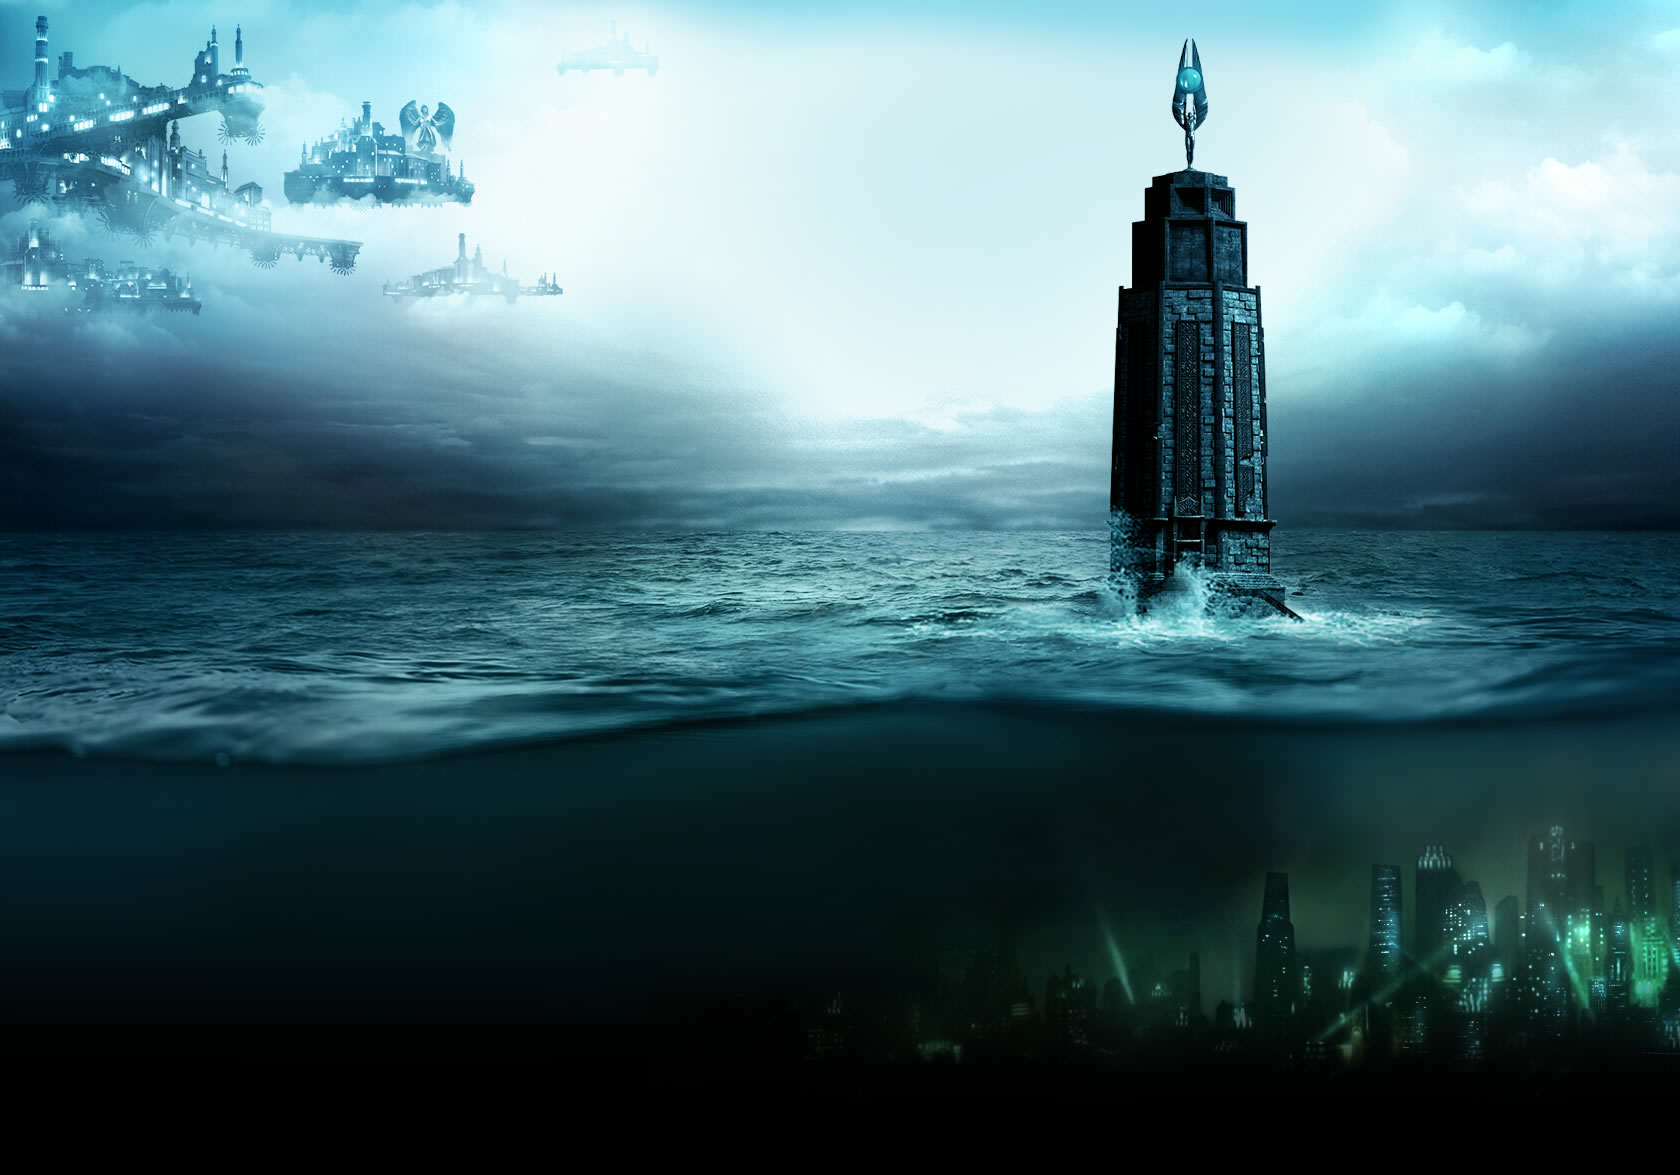 BioShock The Collection Officially Confirmed By 2K 1467223962 bioshock the collection art